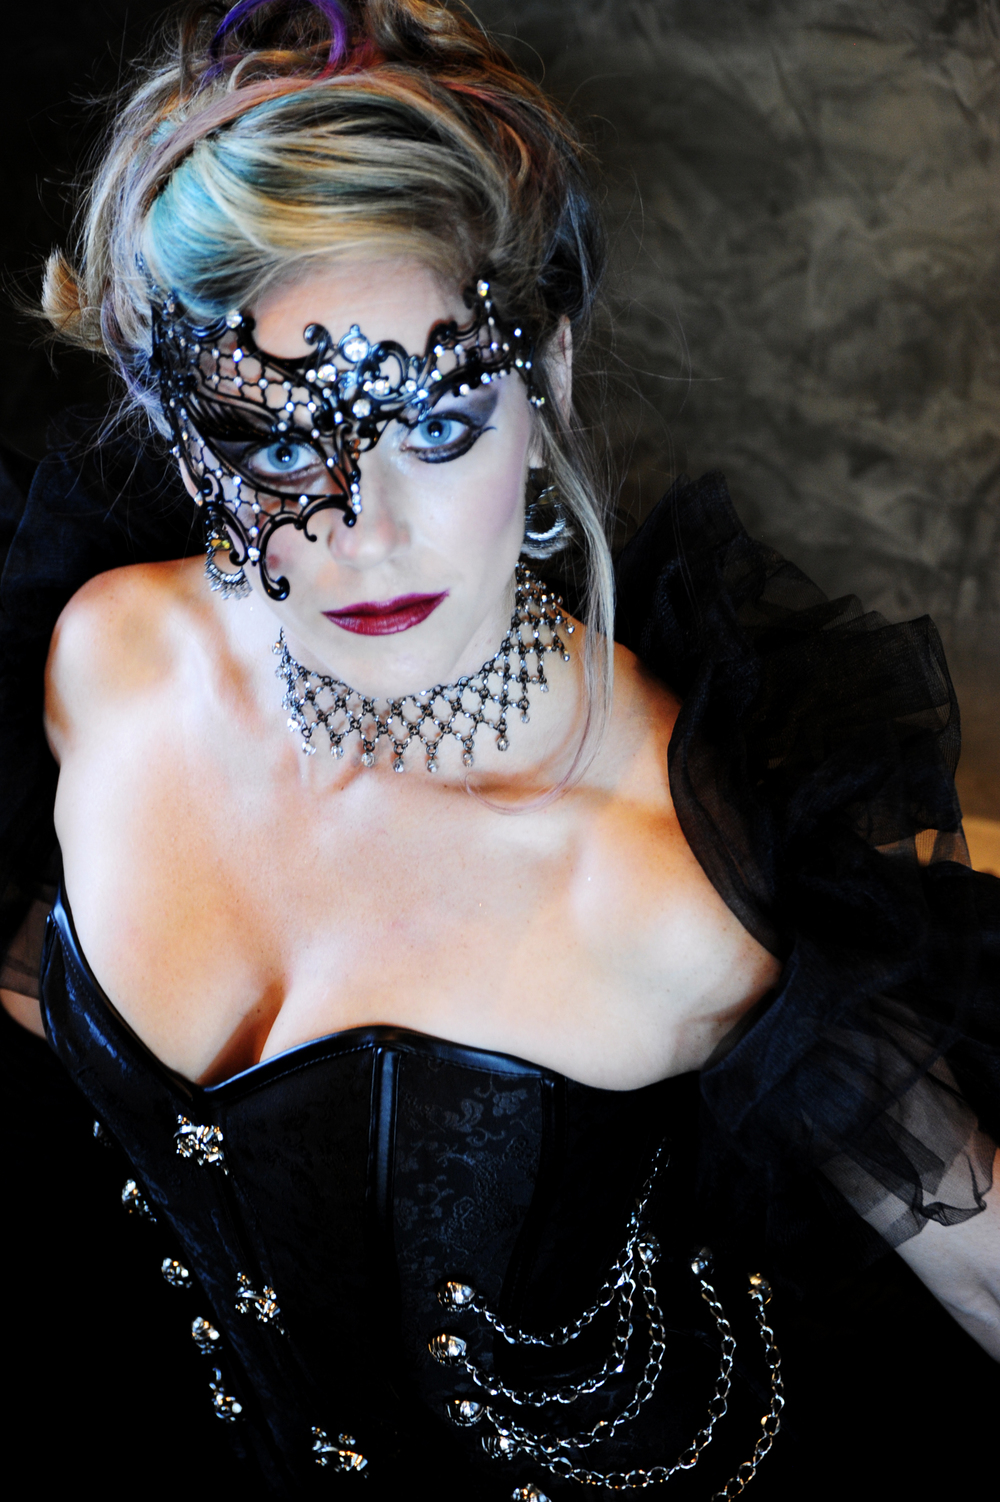 The Dark Mistress - Photo by Grace Lee